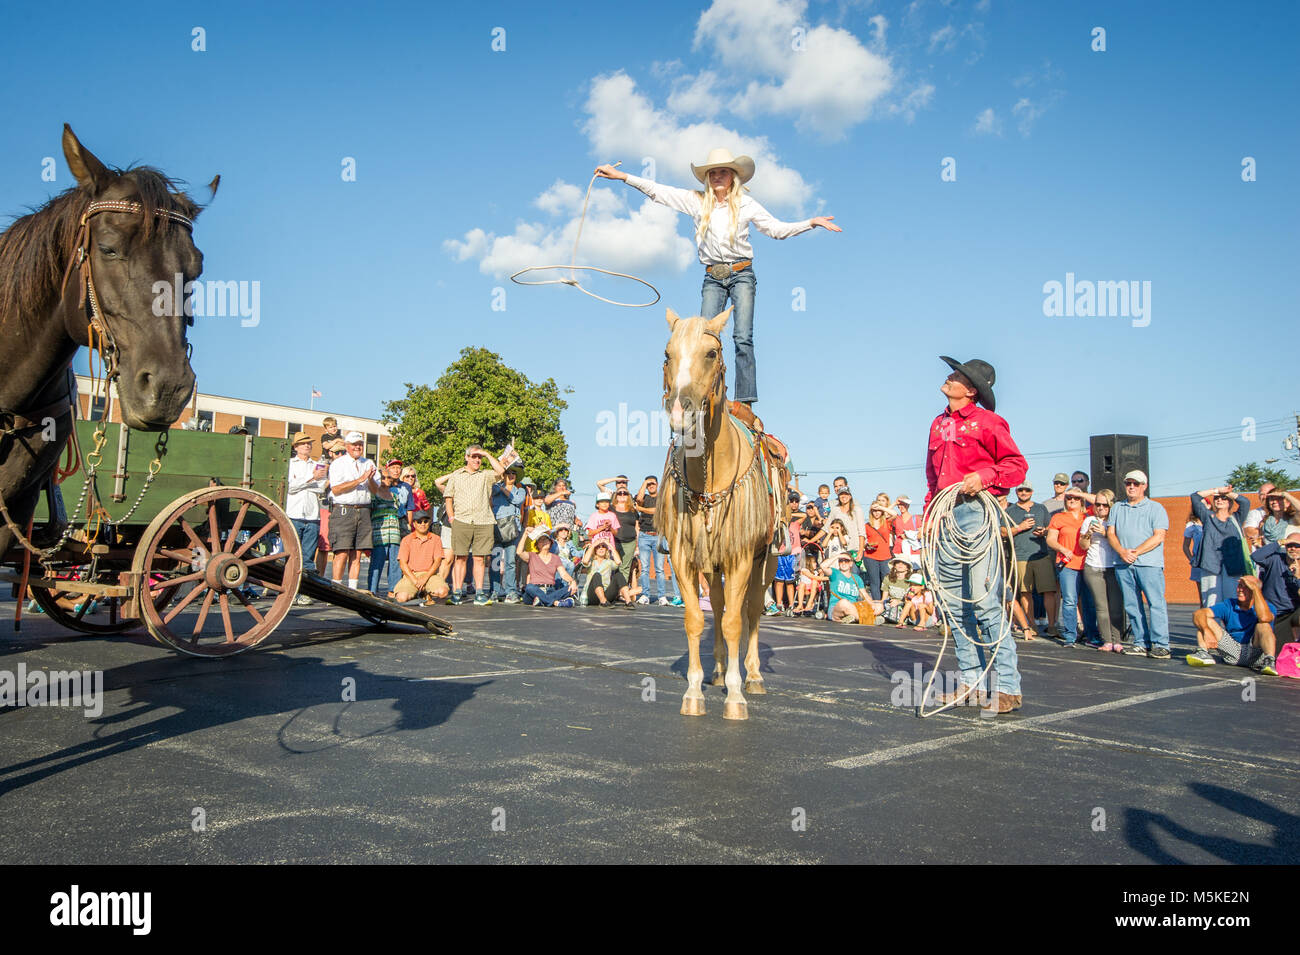 Man in cowboy hat watches young girl standing on top of horse and  preforming rope trick